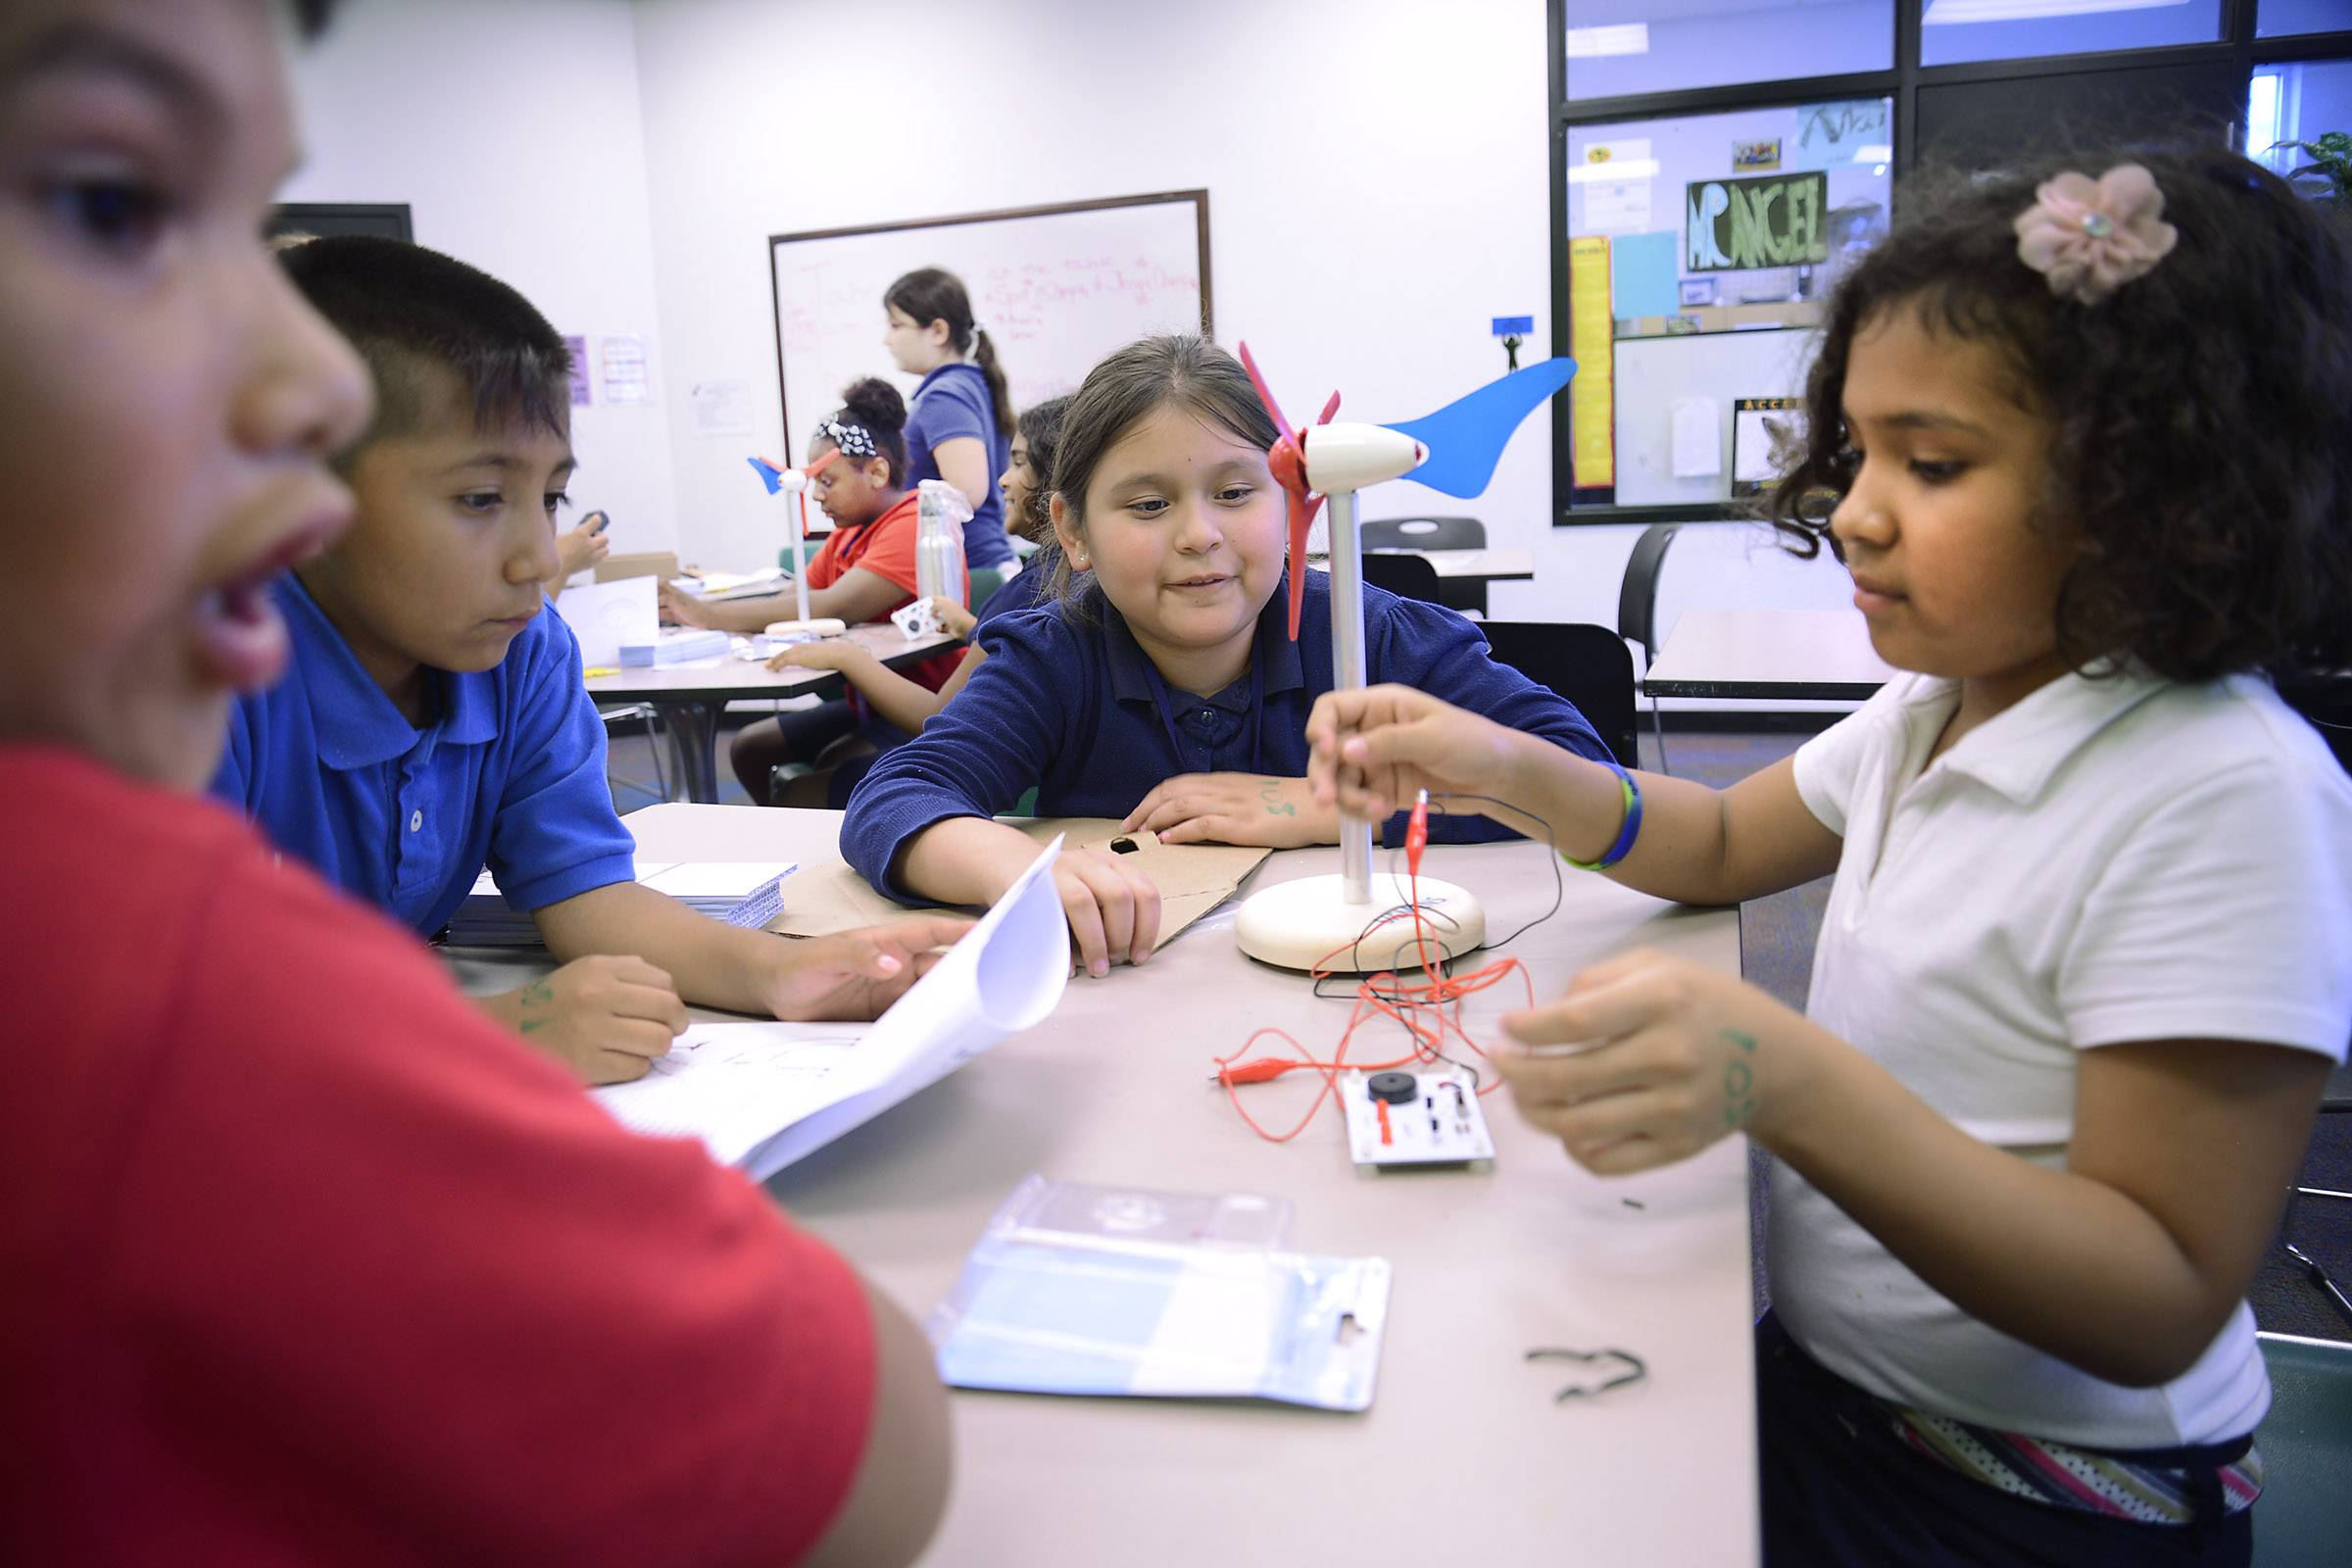 Oscar Jimenez, 9, left, Ryan Morales, 8, Coral Lopez, 8, and Dania Uribe, 8, work on their miniature wind turbine project Tuesday at the Boys & Girls Club of Elgin. Siemens USA brought its STEM (Science, Technology, Engineering and Math) program to the club and gave third- and fourth-graders the opportunity to build models of wind turbines as they learned about clean energy and possible careers in technology.